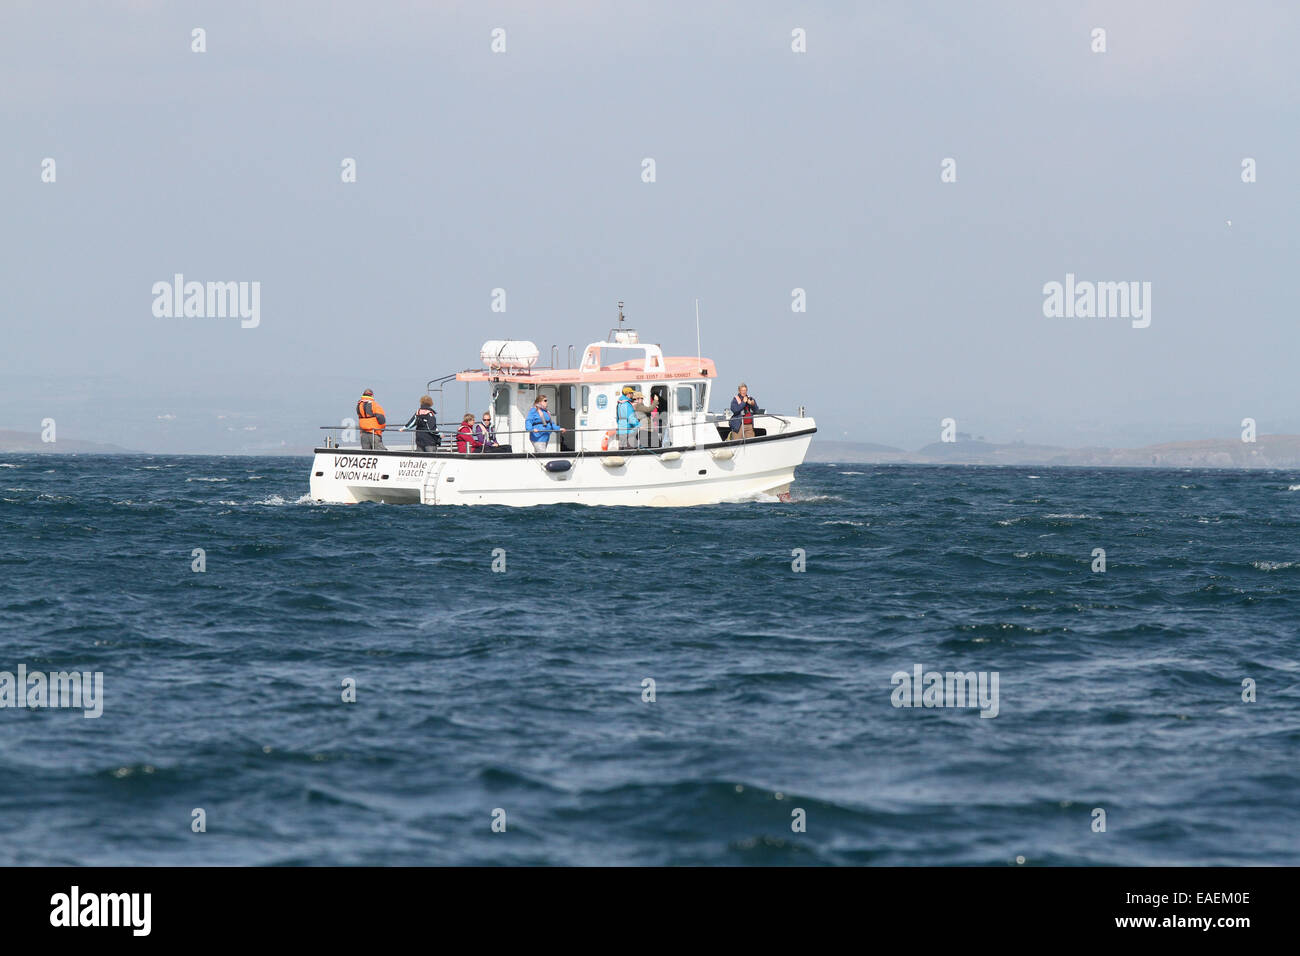 Whale watching Ireland. People standing whale watching from a boat on a sunny day on the Atlantic Ocean off Ireland. - Stock Image